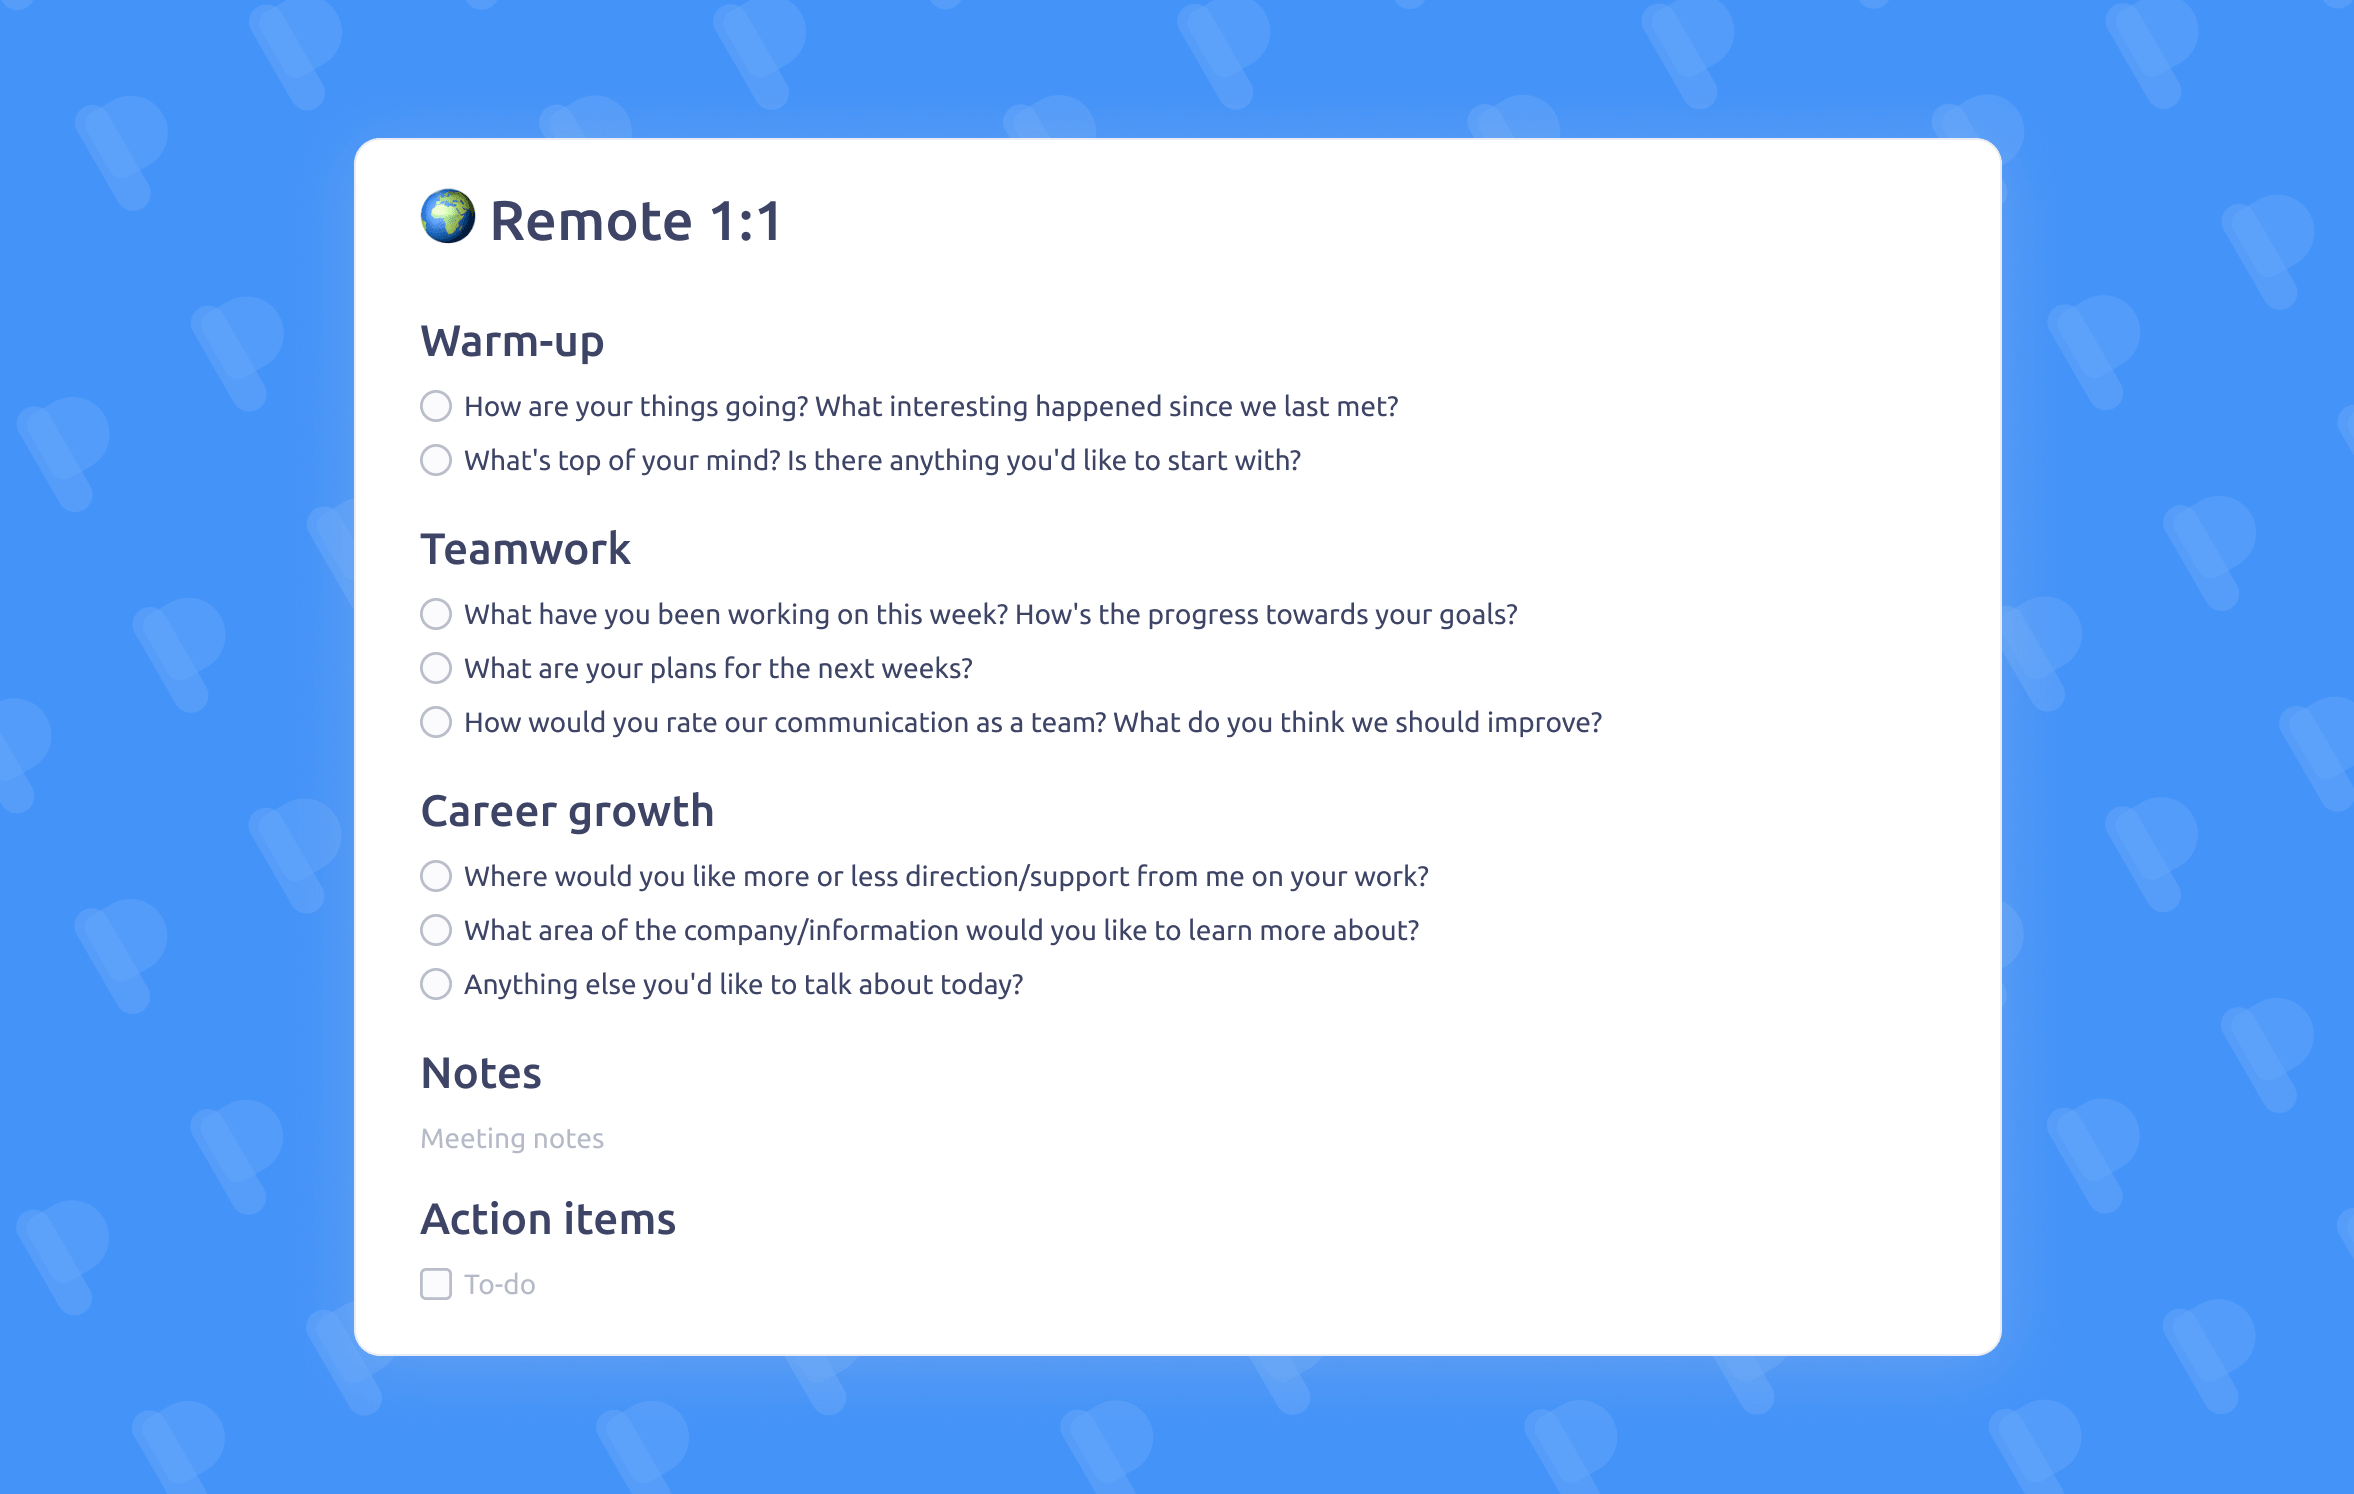 Remote One-on-One meeting template